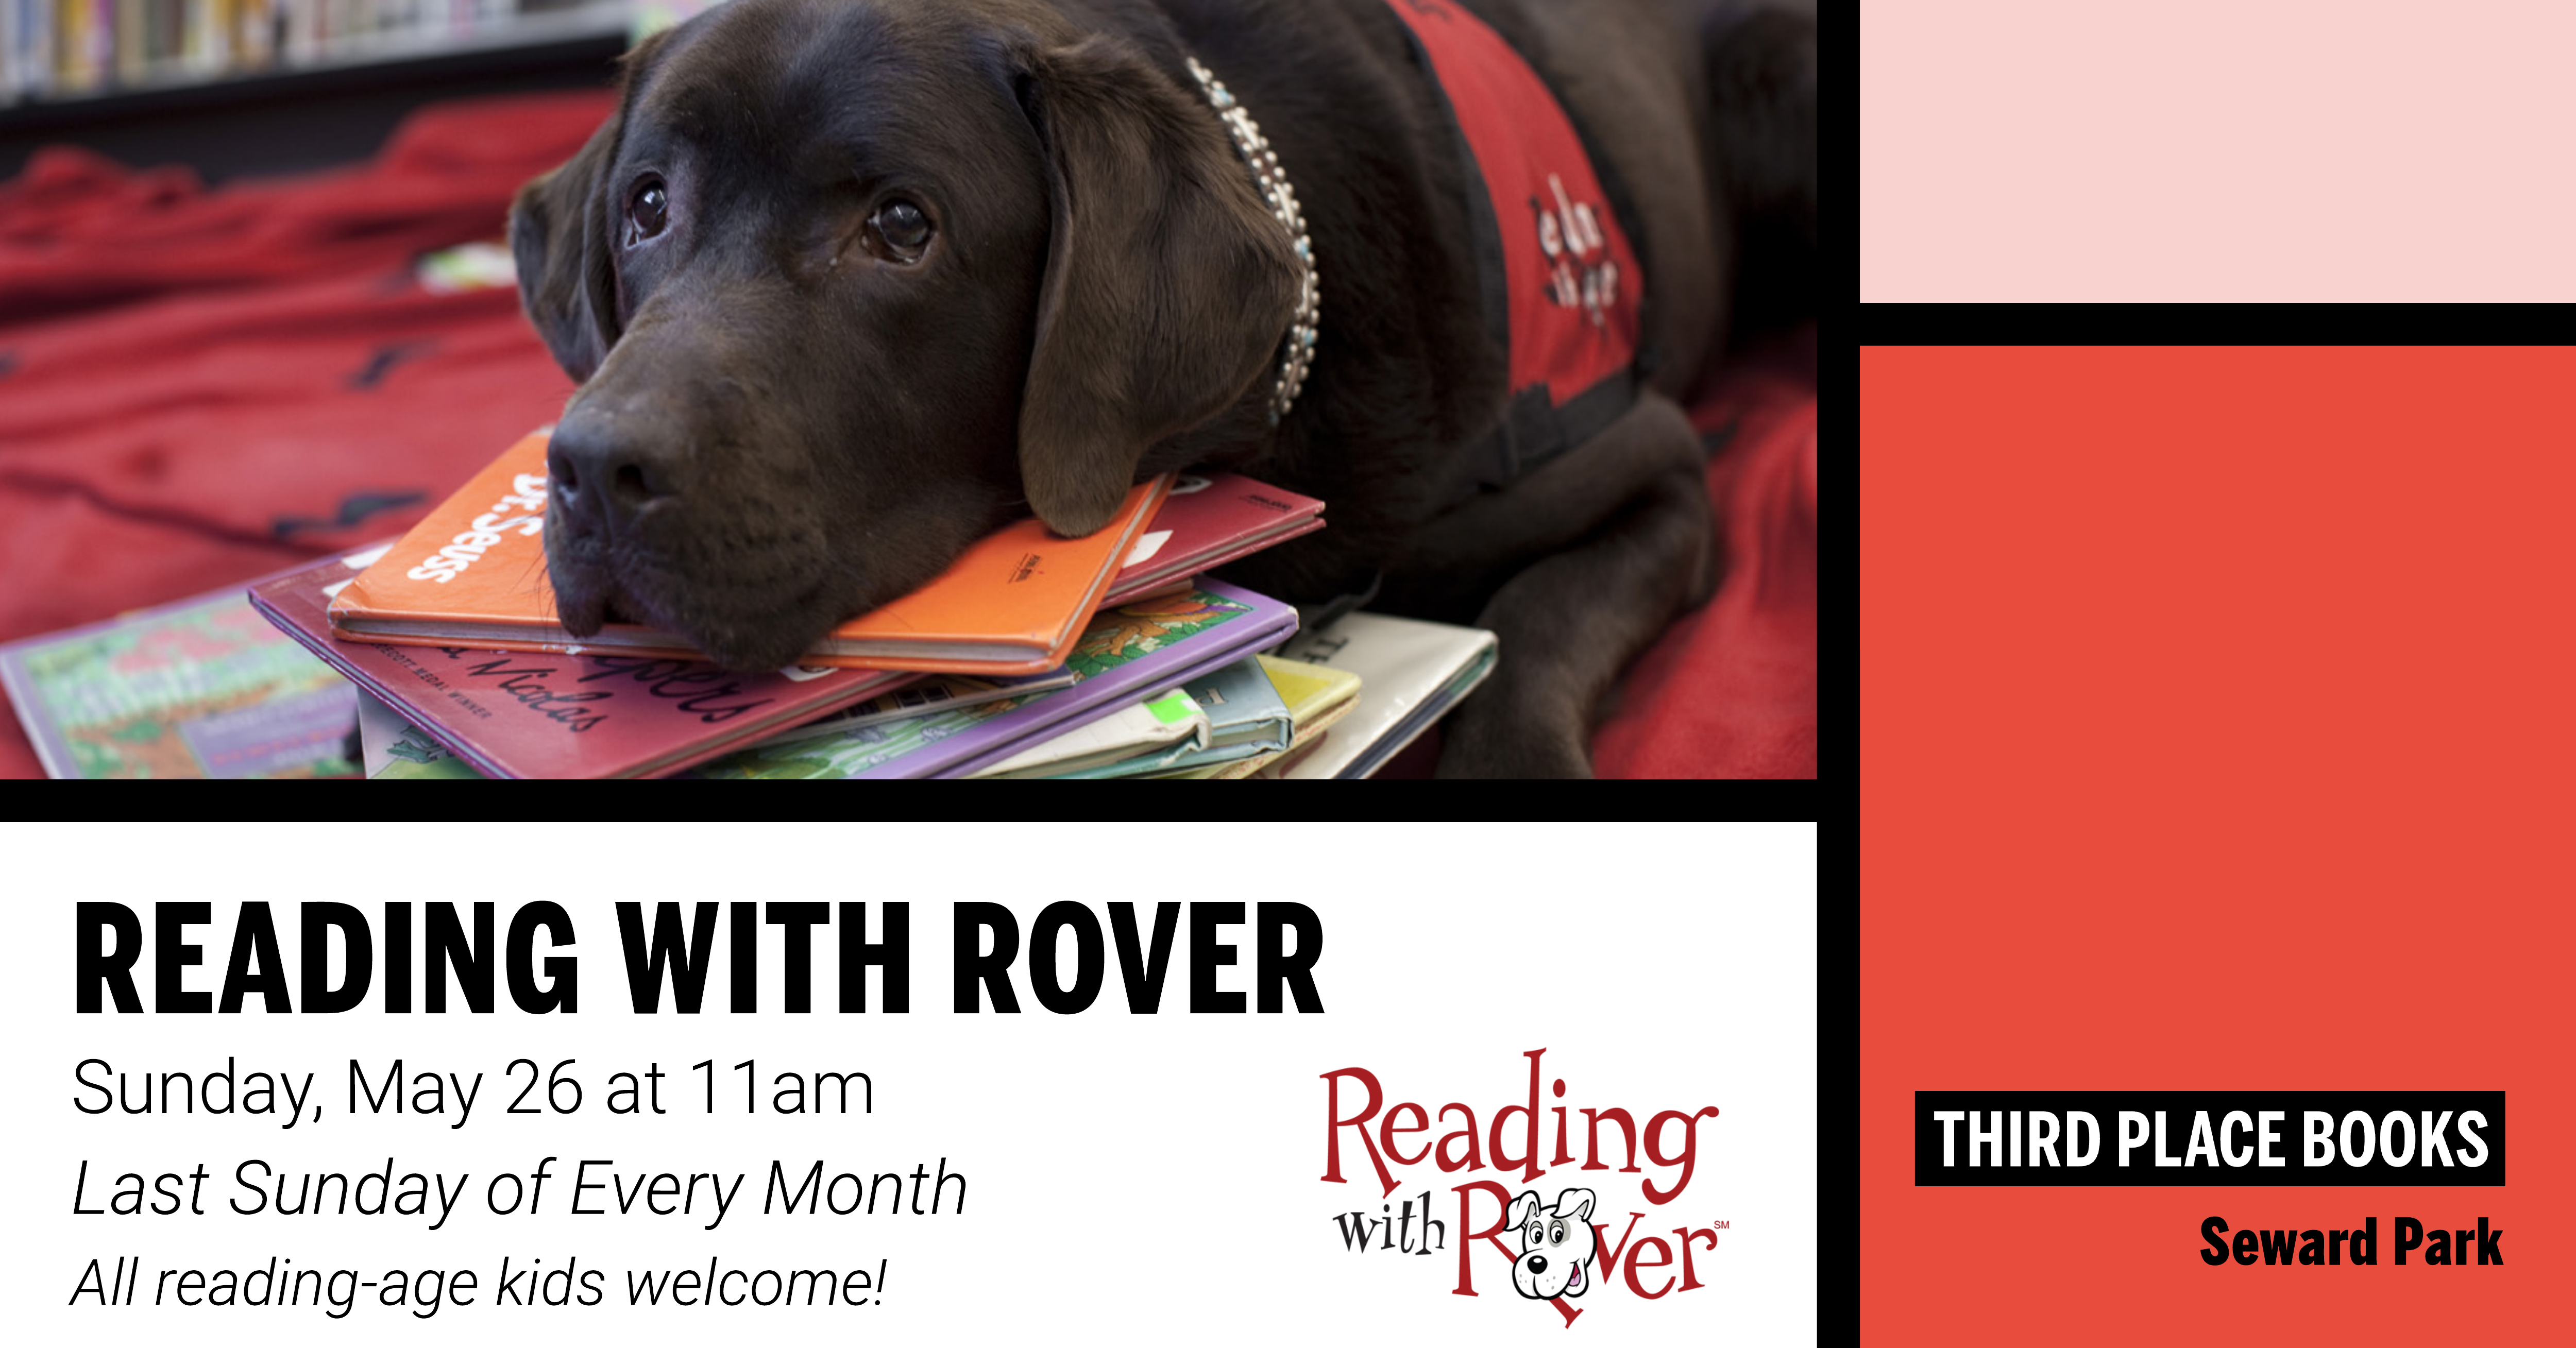 Reading with Rover on Sunday, May 26 at 11am